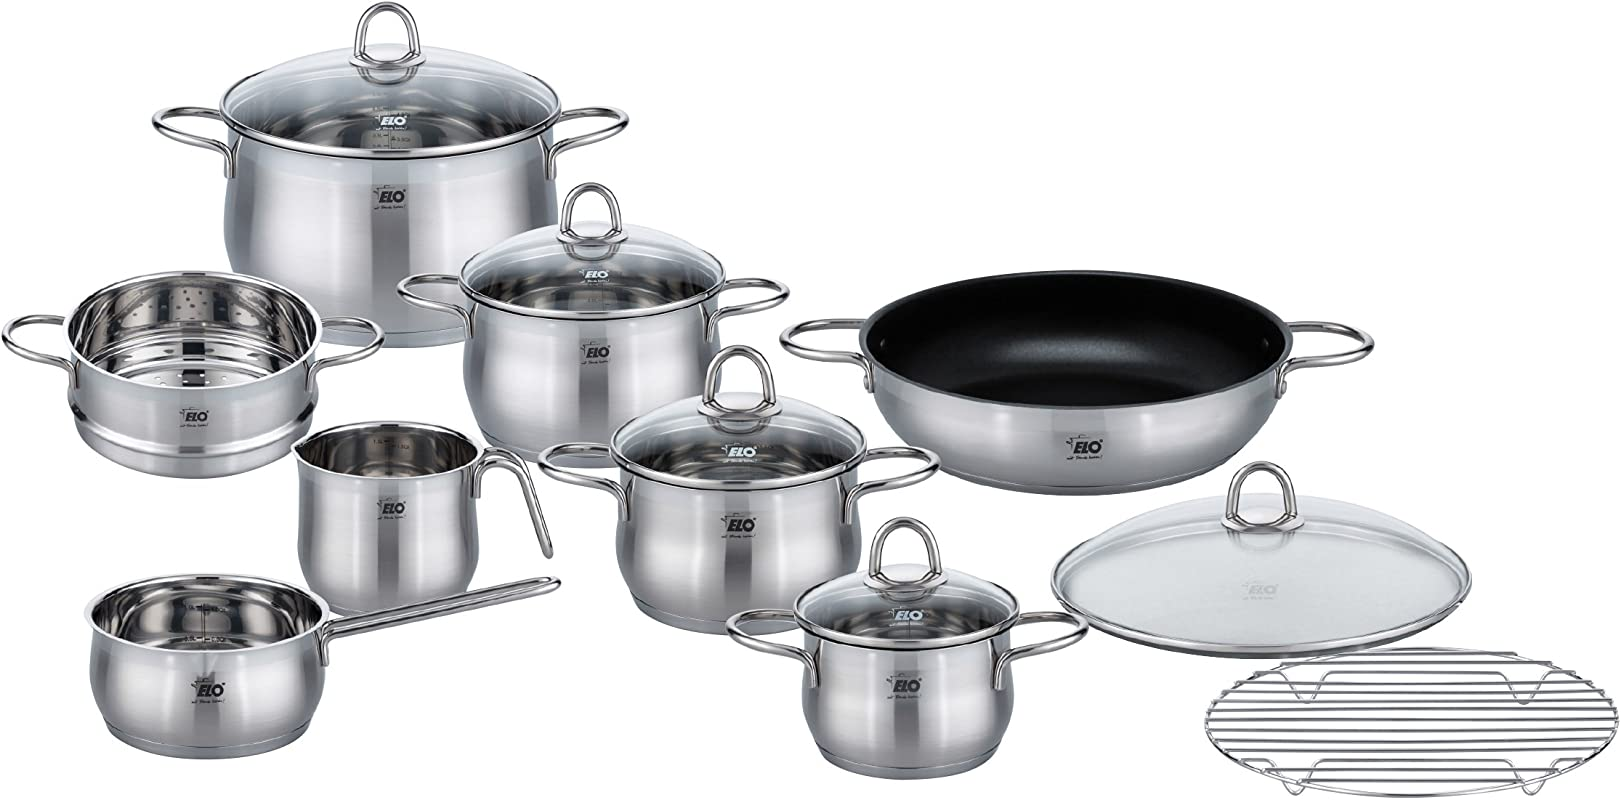 ELO Platin Stainless Steel Kitchen Induction Cookware Pots And Pans Set With Shock Resistant Glass Lids Easy Pour Rim And Integrated Measuring Scale 10 Piece